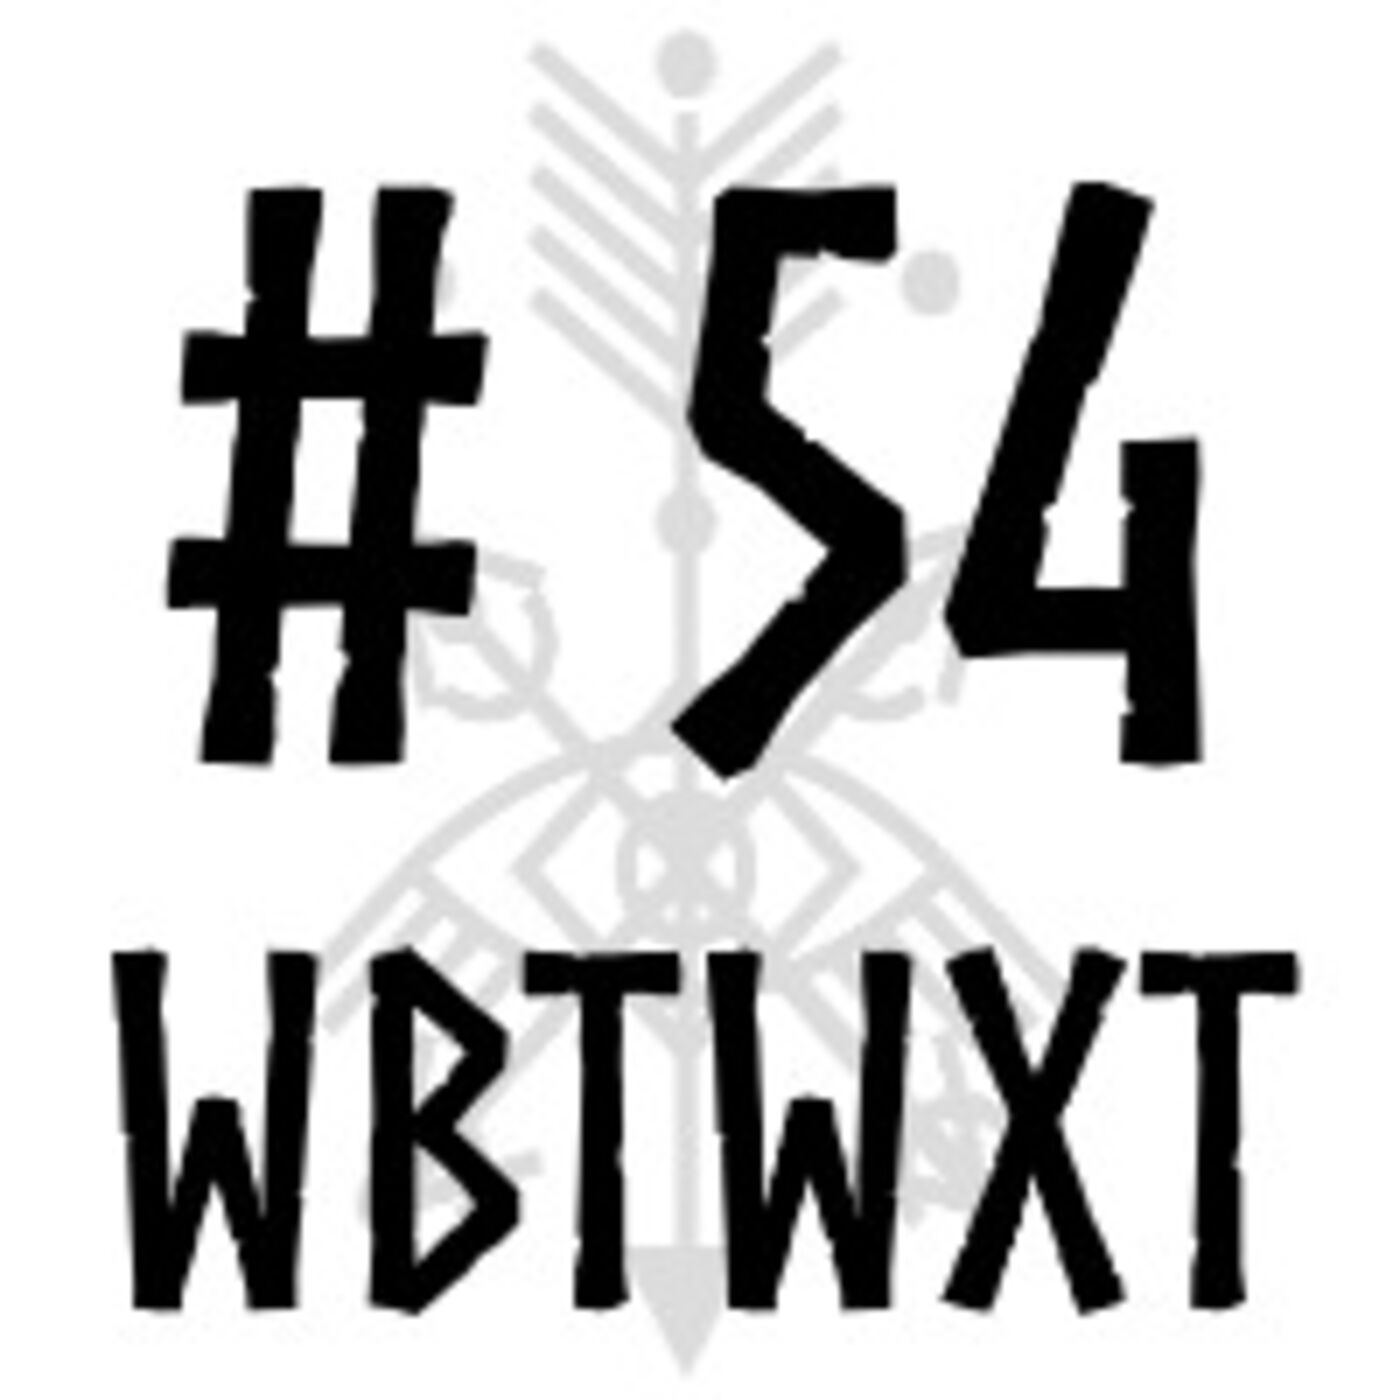 WBTWXT EP #54 - Spellcasting with video games